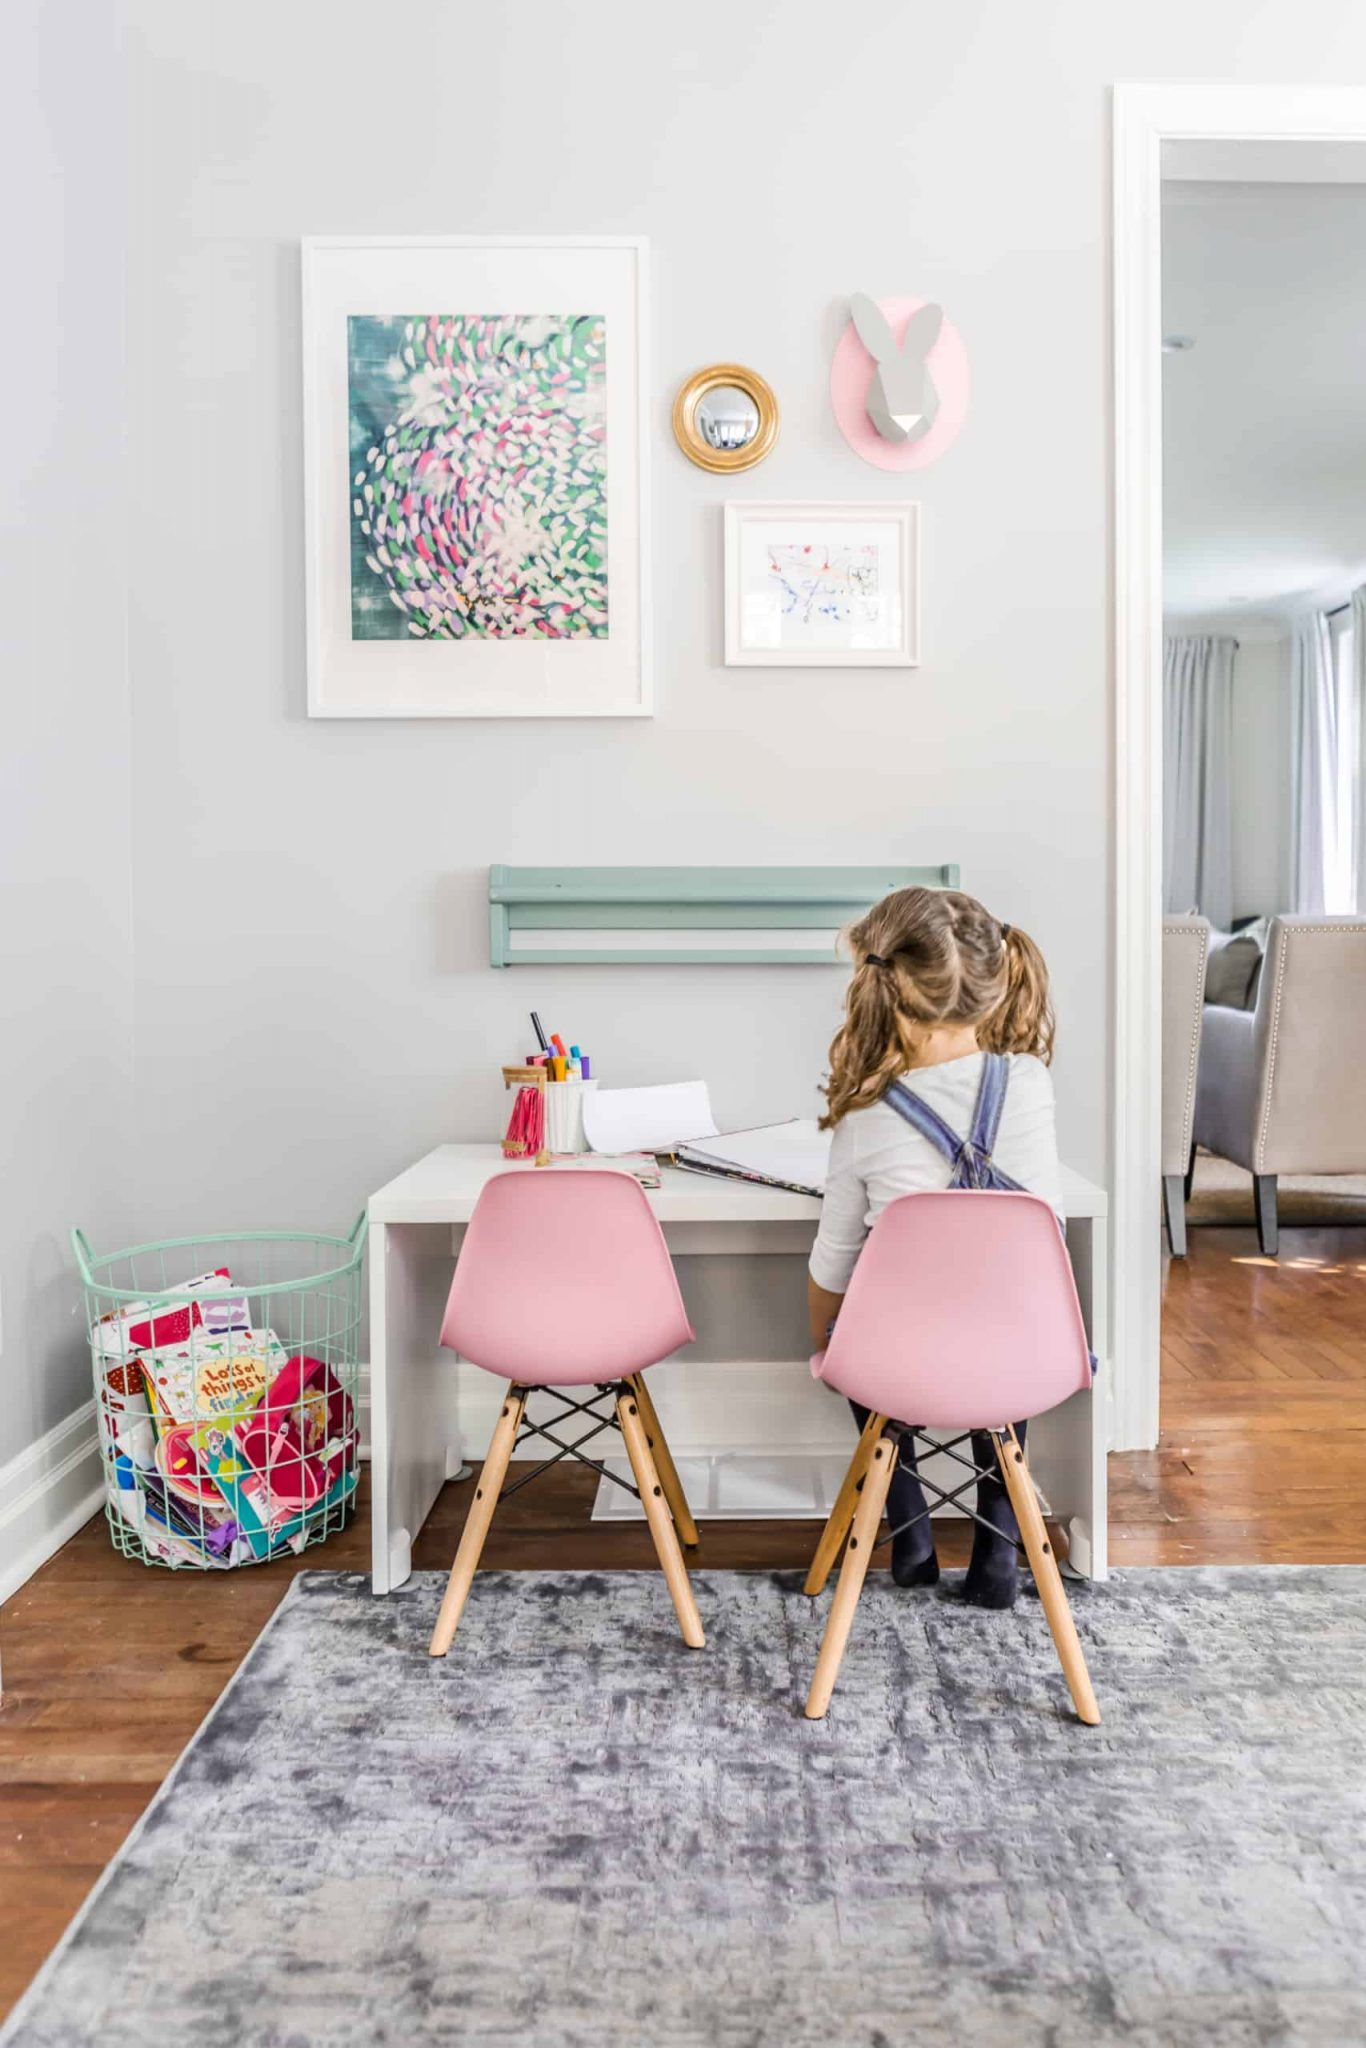 Small, pink stools at a small workspace